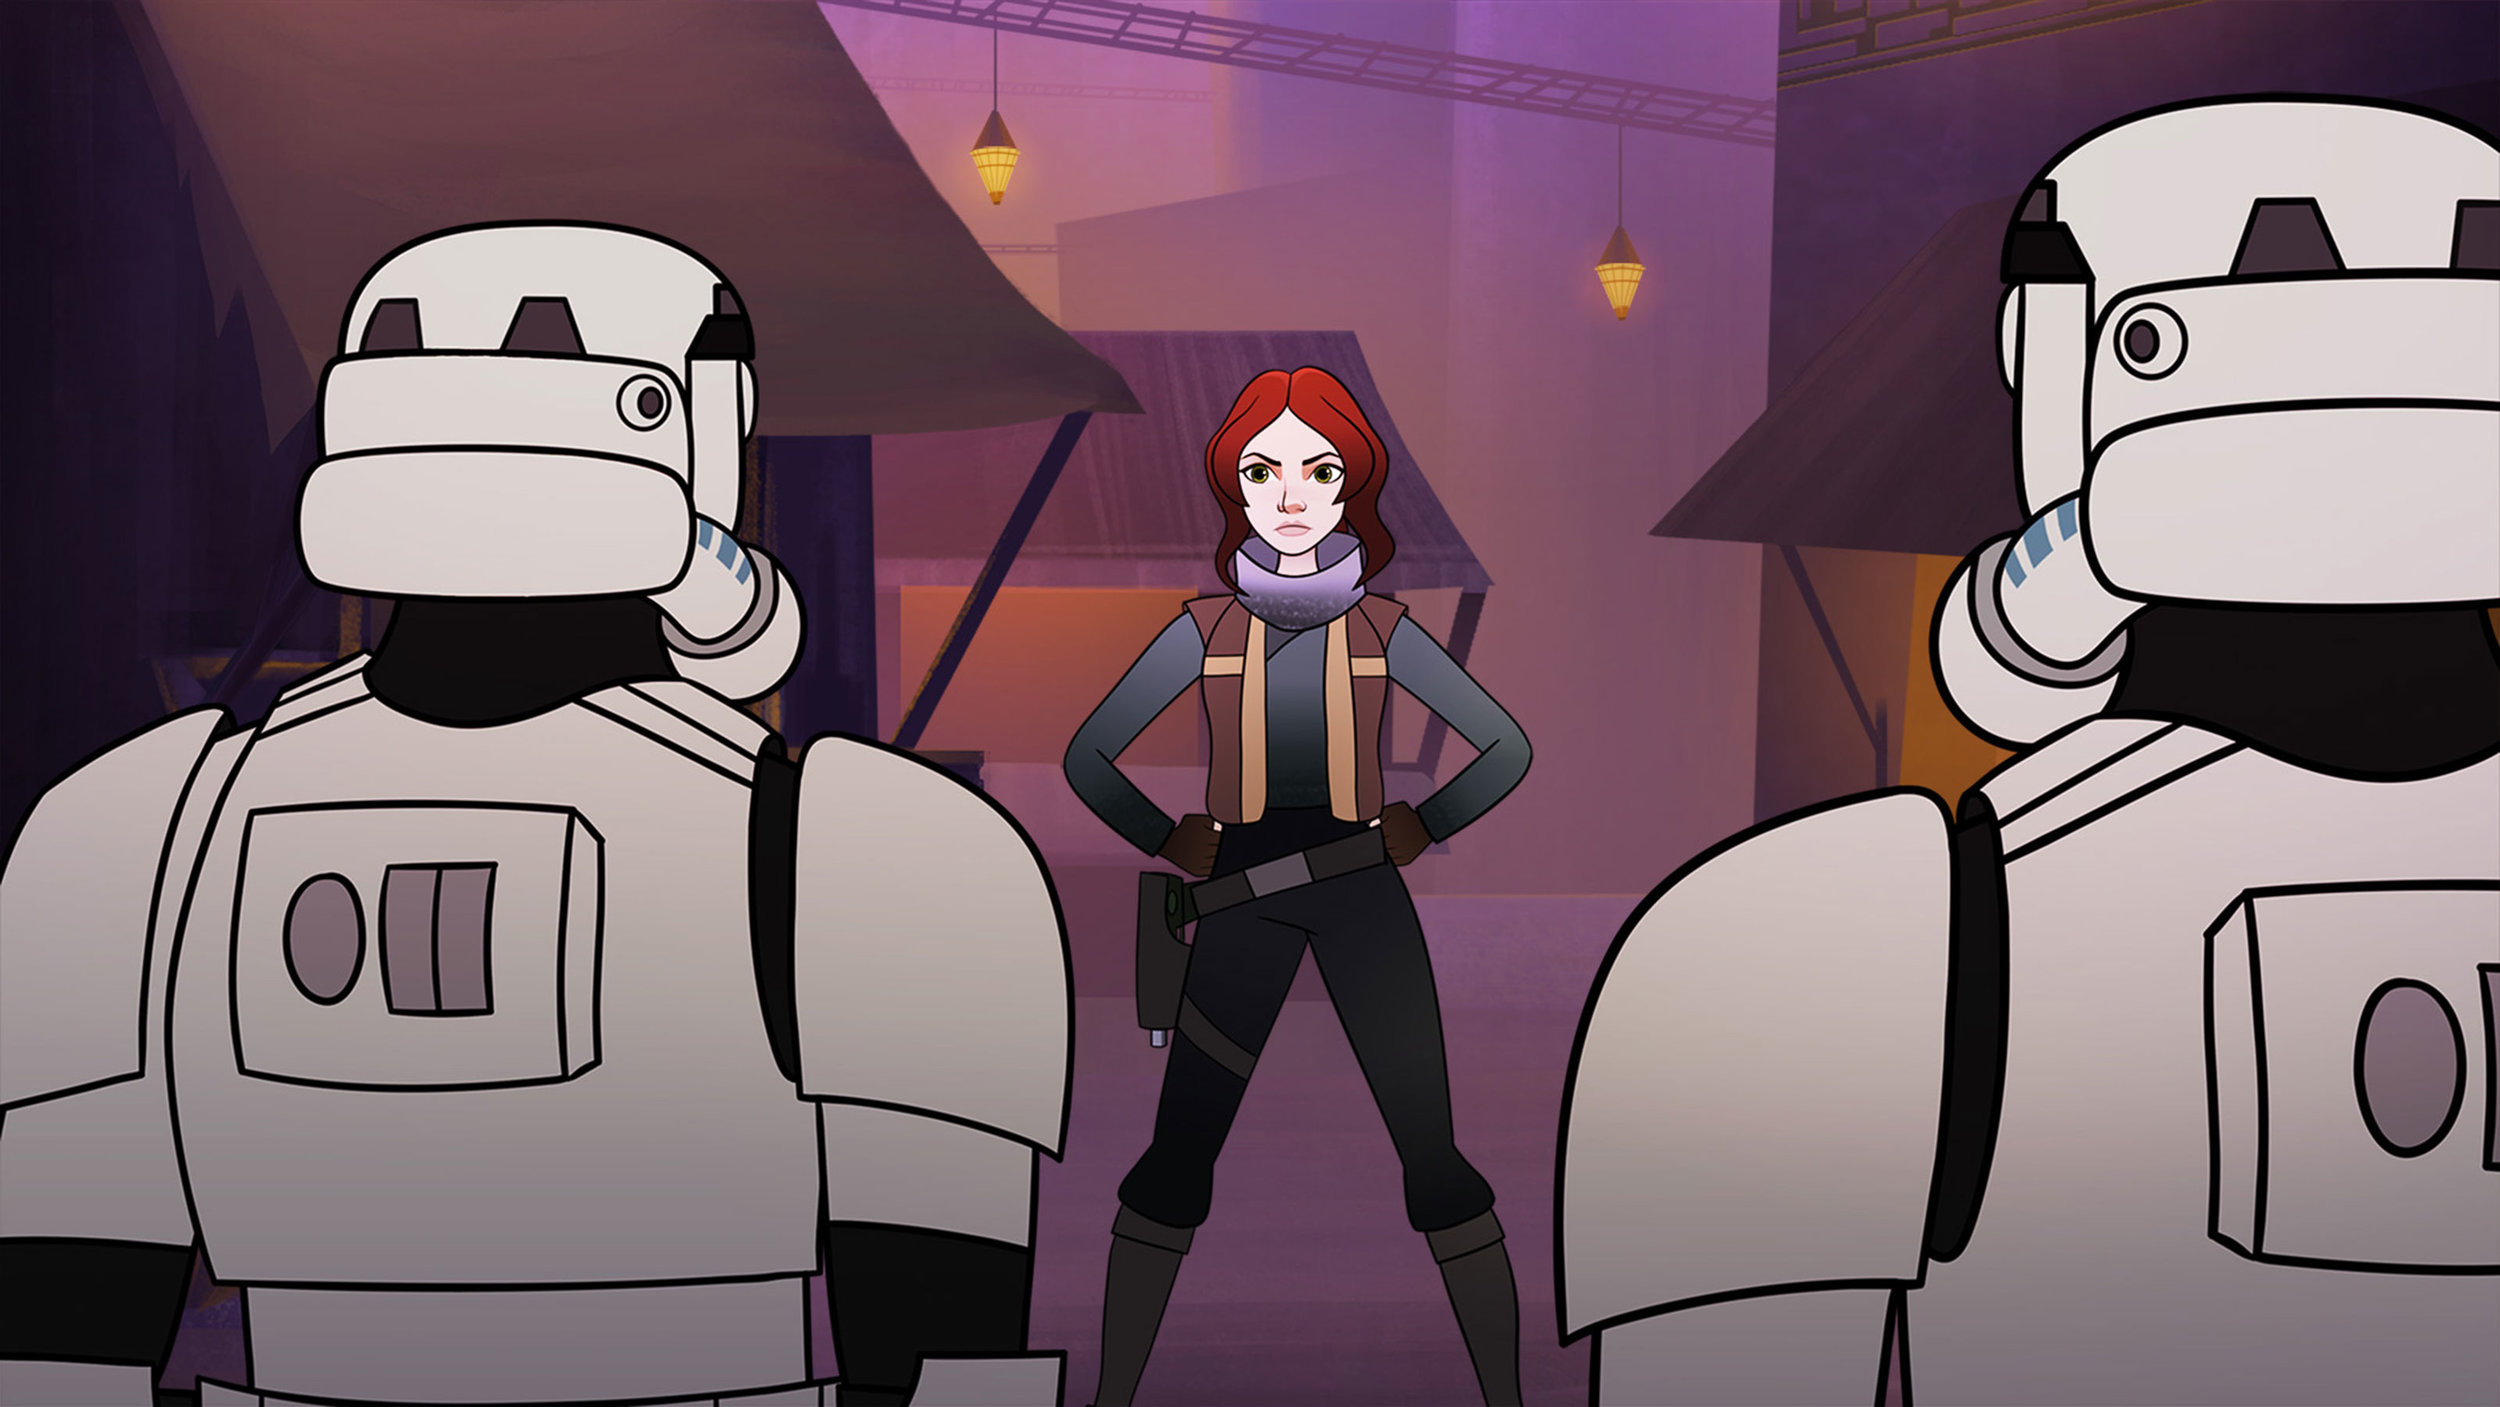 star-wars-forces-of-destiny-animated-shorts-will-focus-on-the-female-heroes-of-the-star-wars-universe5